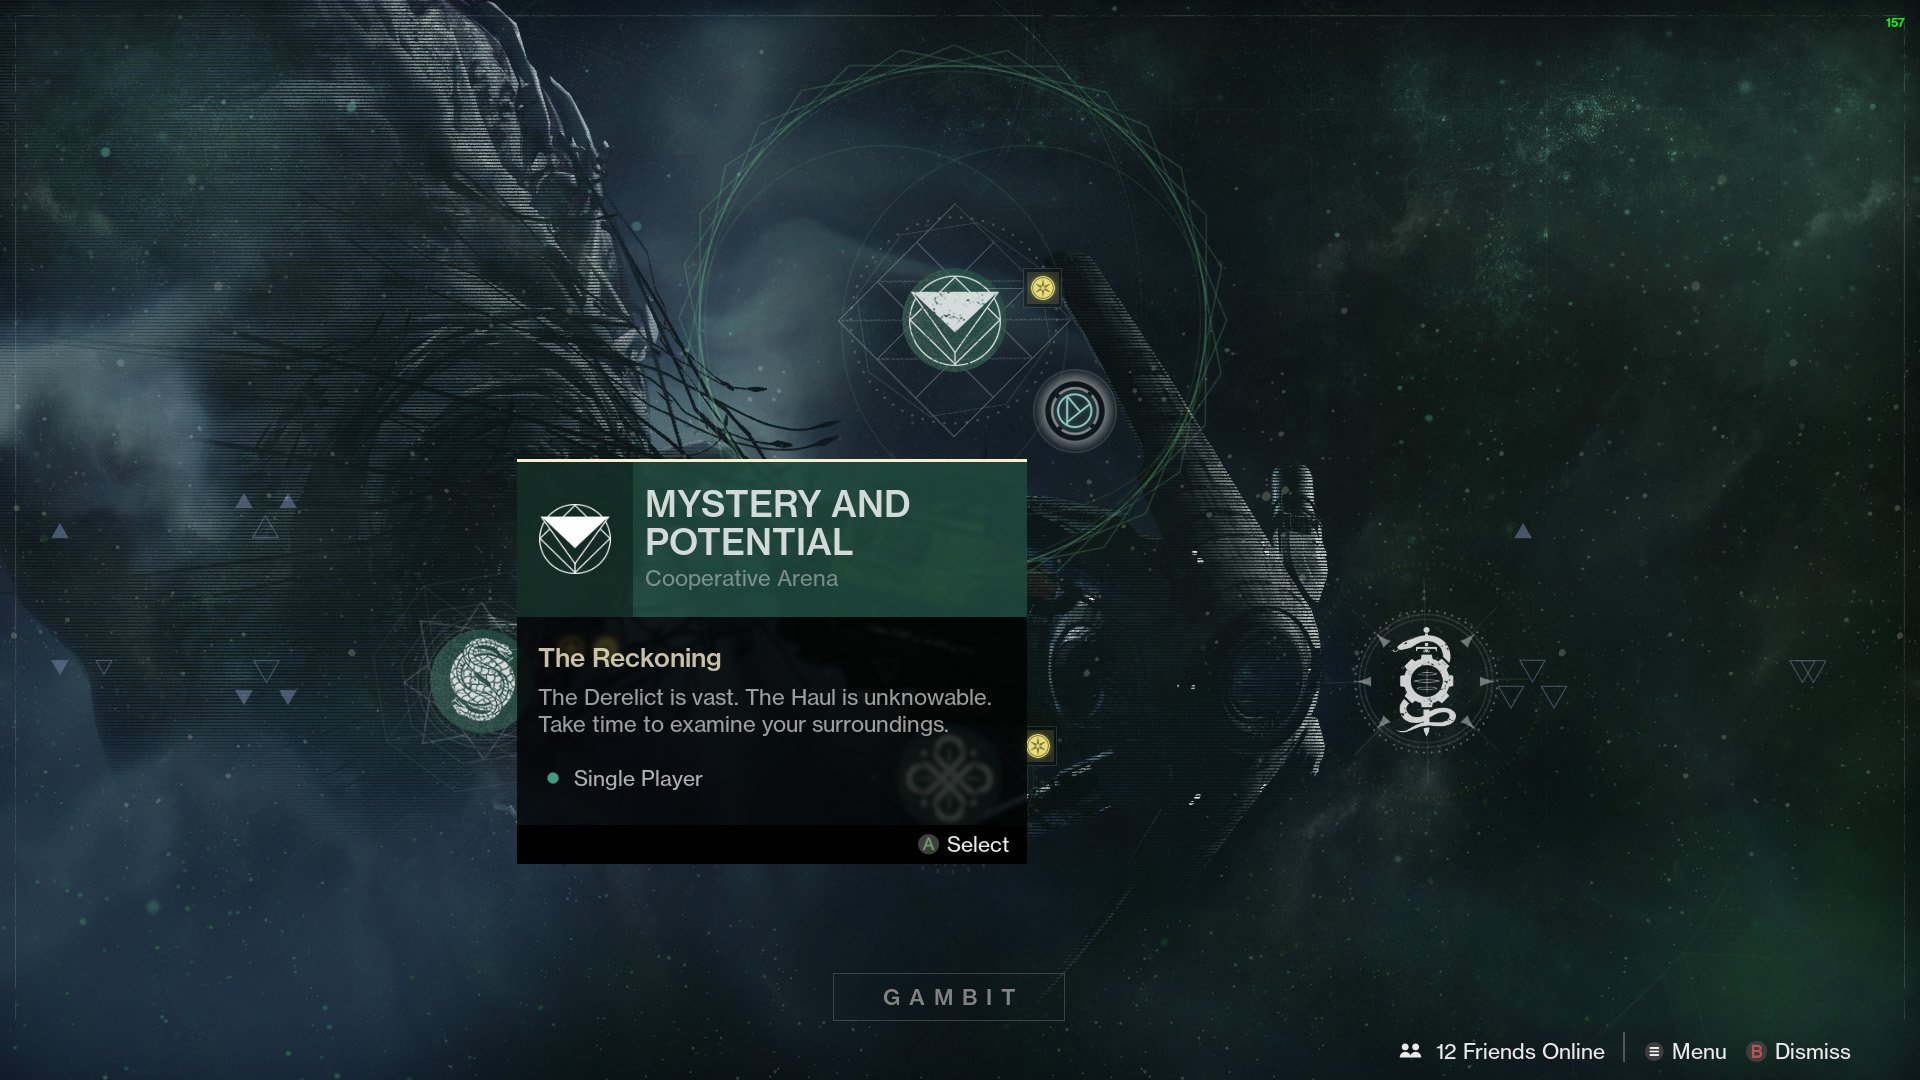 Destiny 2 Drifter's Hideaway Mystery and Potential